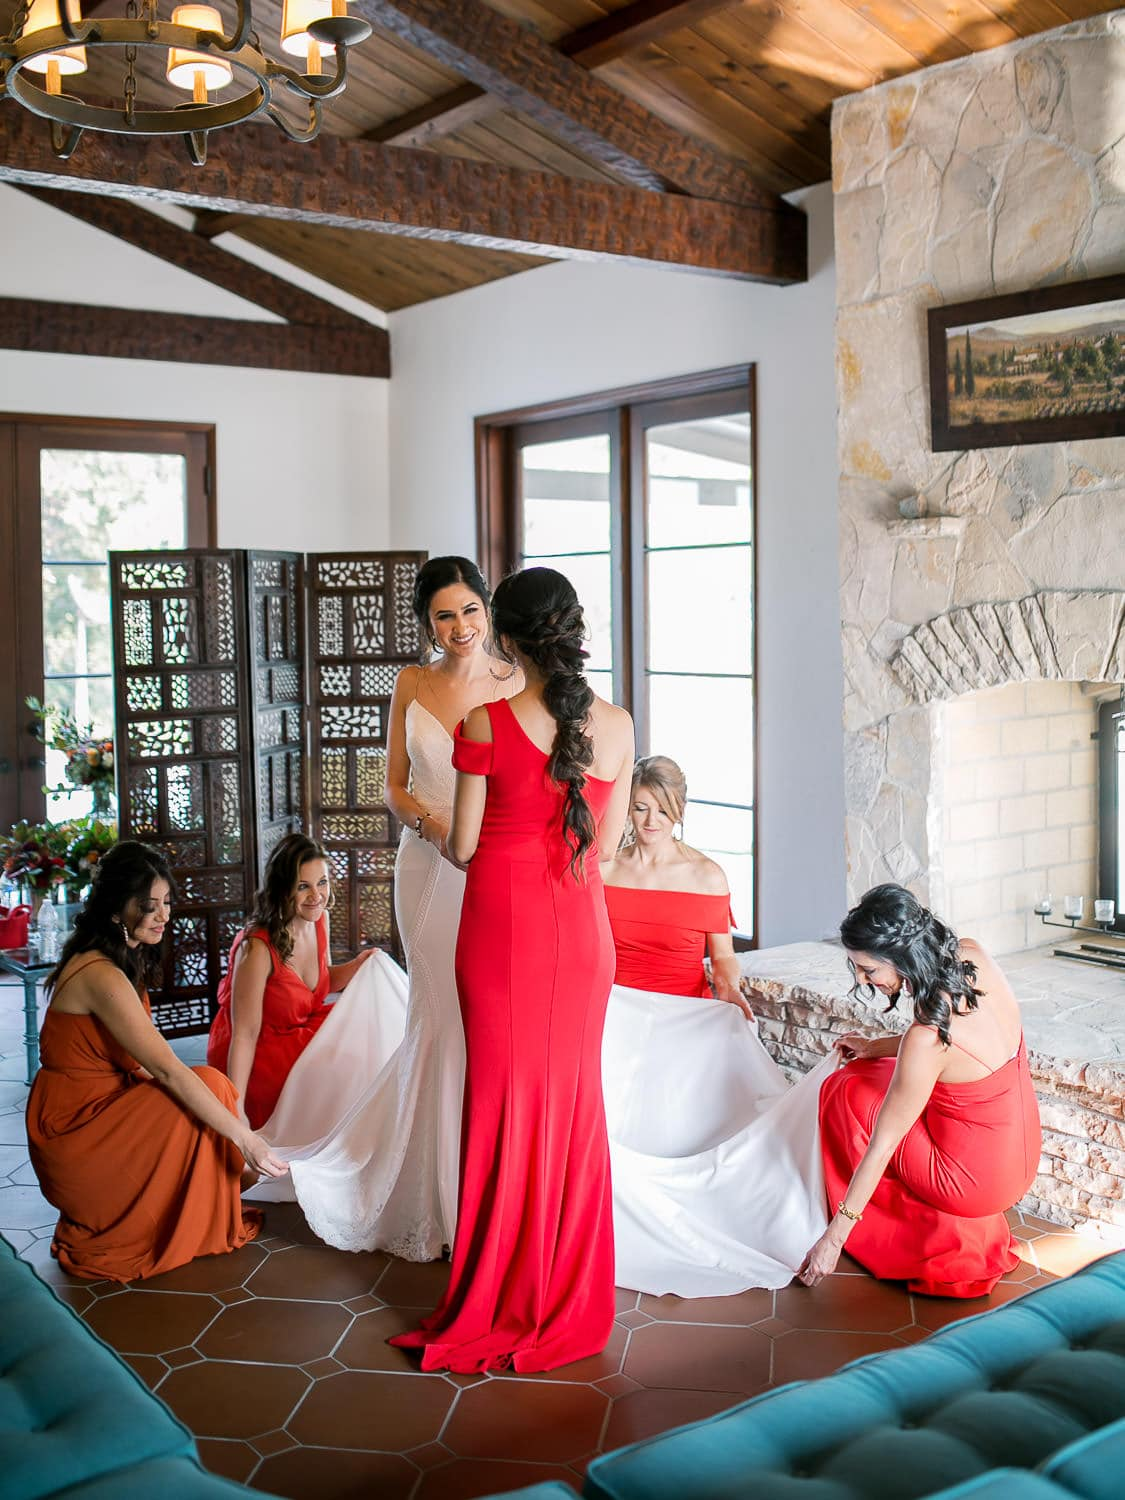 Bridesmaid-Getting-Ready-Inspiration-Greg-Ross